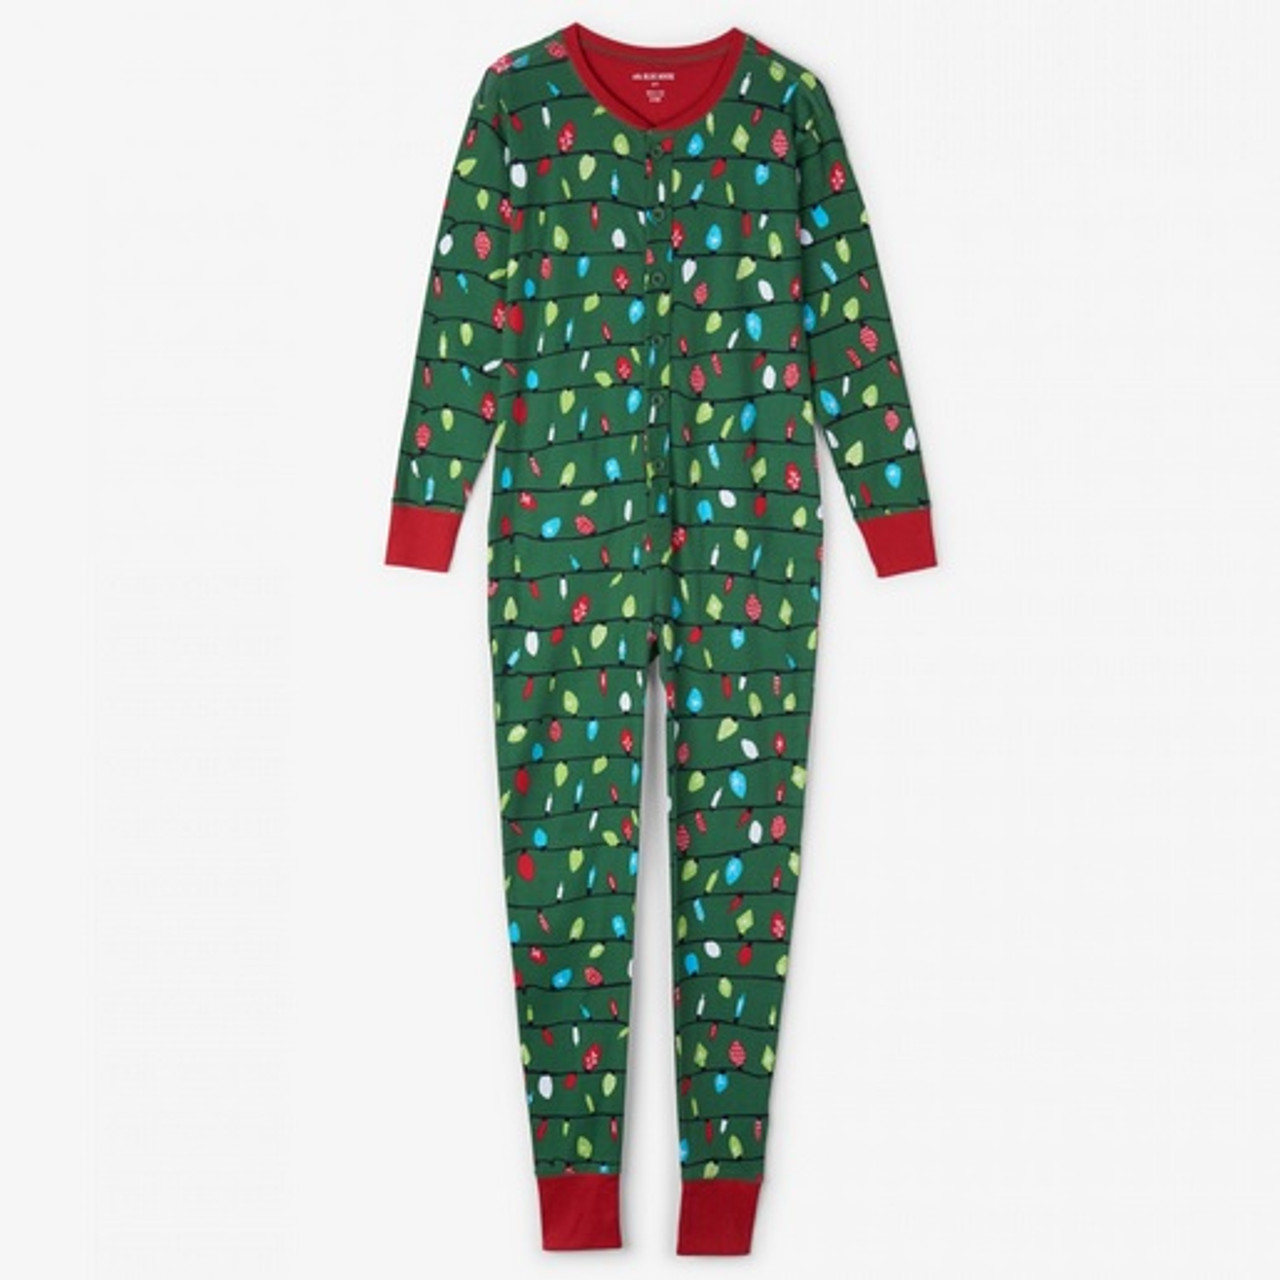 Northern Lights Adult Christmas Onesies Canada  19b7c0617